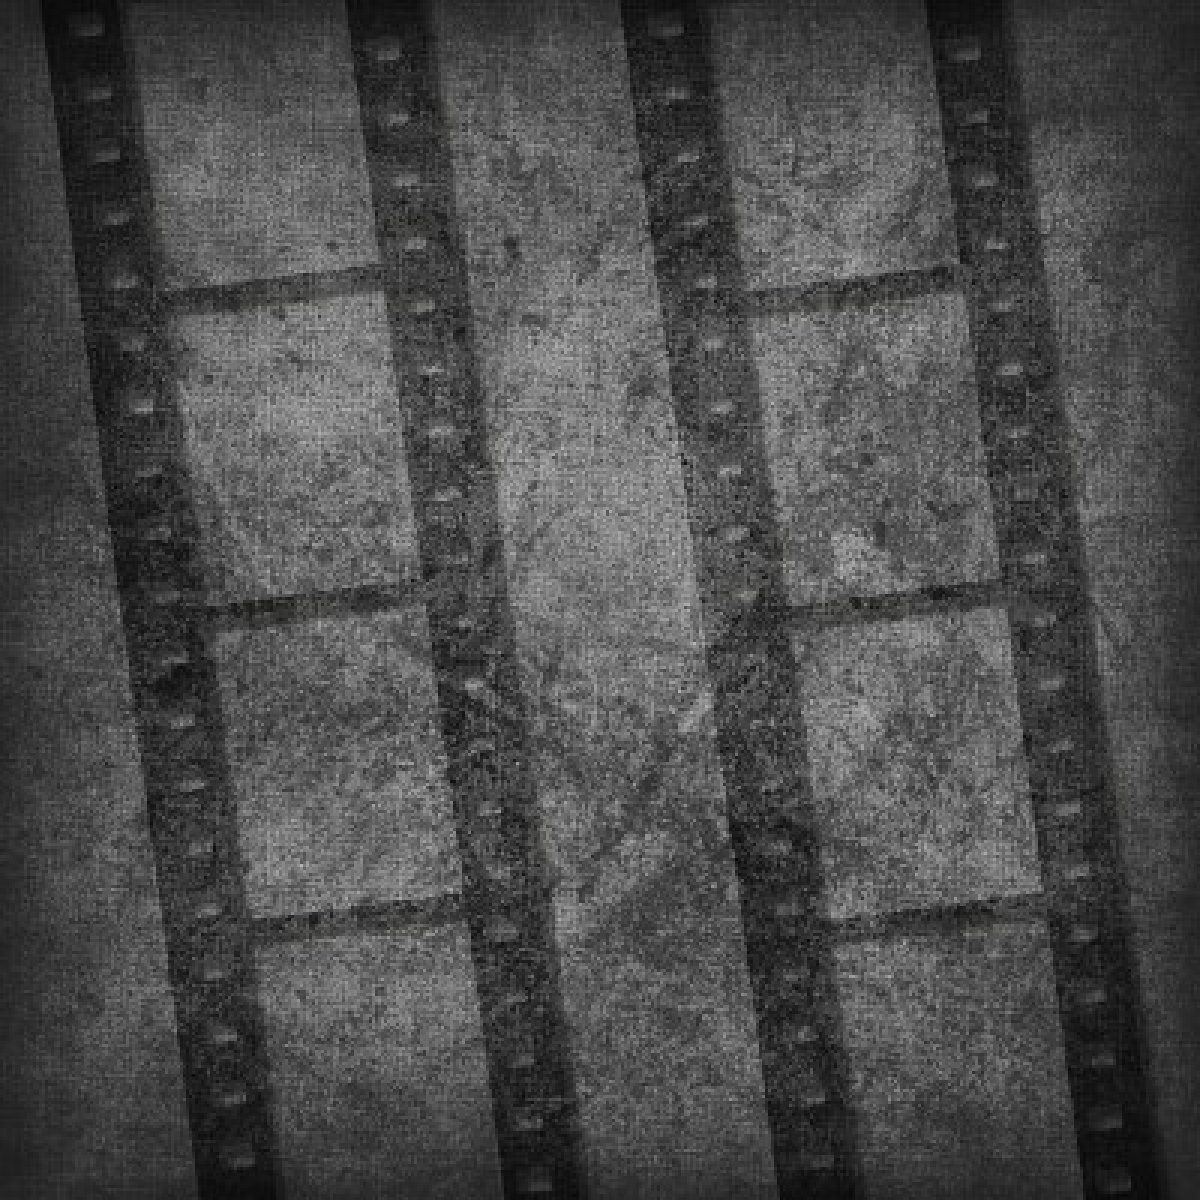 Grunge Graphic Background With Film Black And White Texture Backgrounds